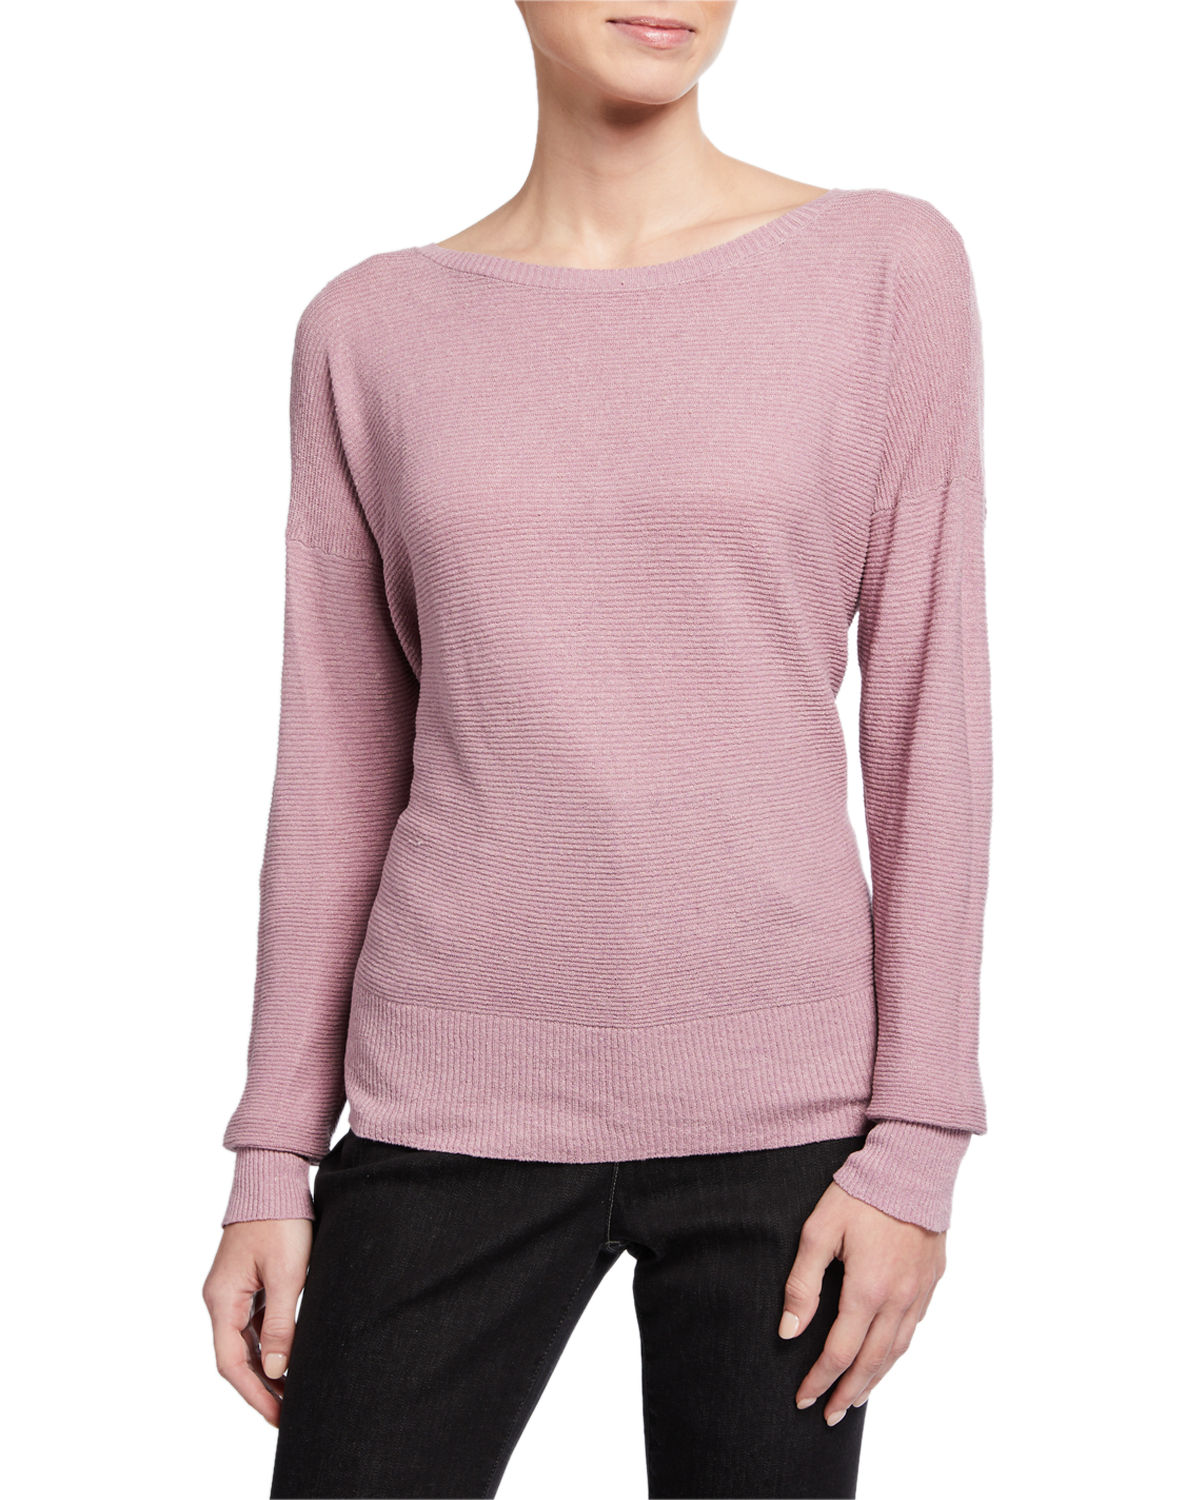 Eileen Fisher PLUS SIZE ORGANIC LINEN CREPE BATEAU-NECK SWEATER